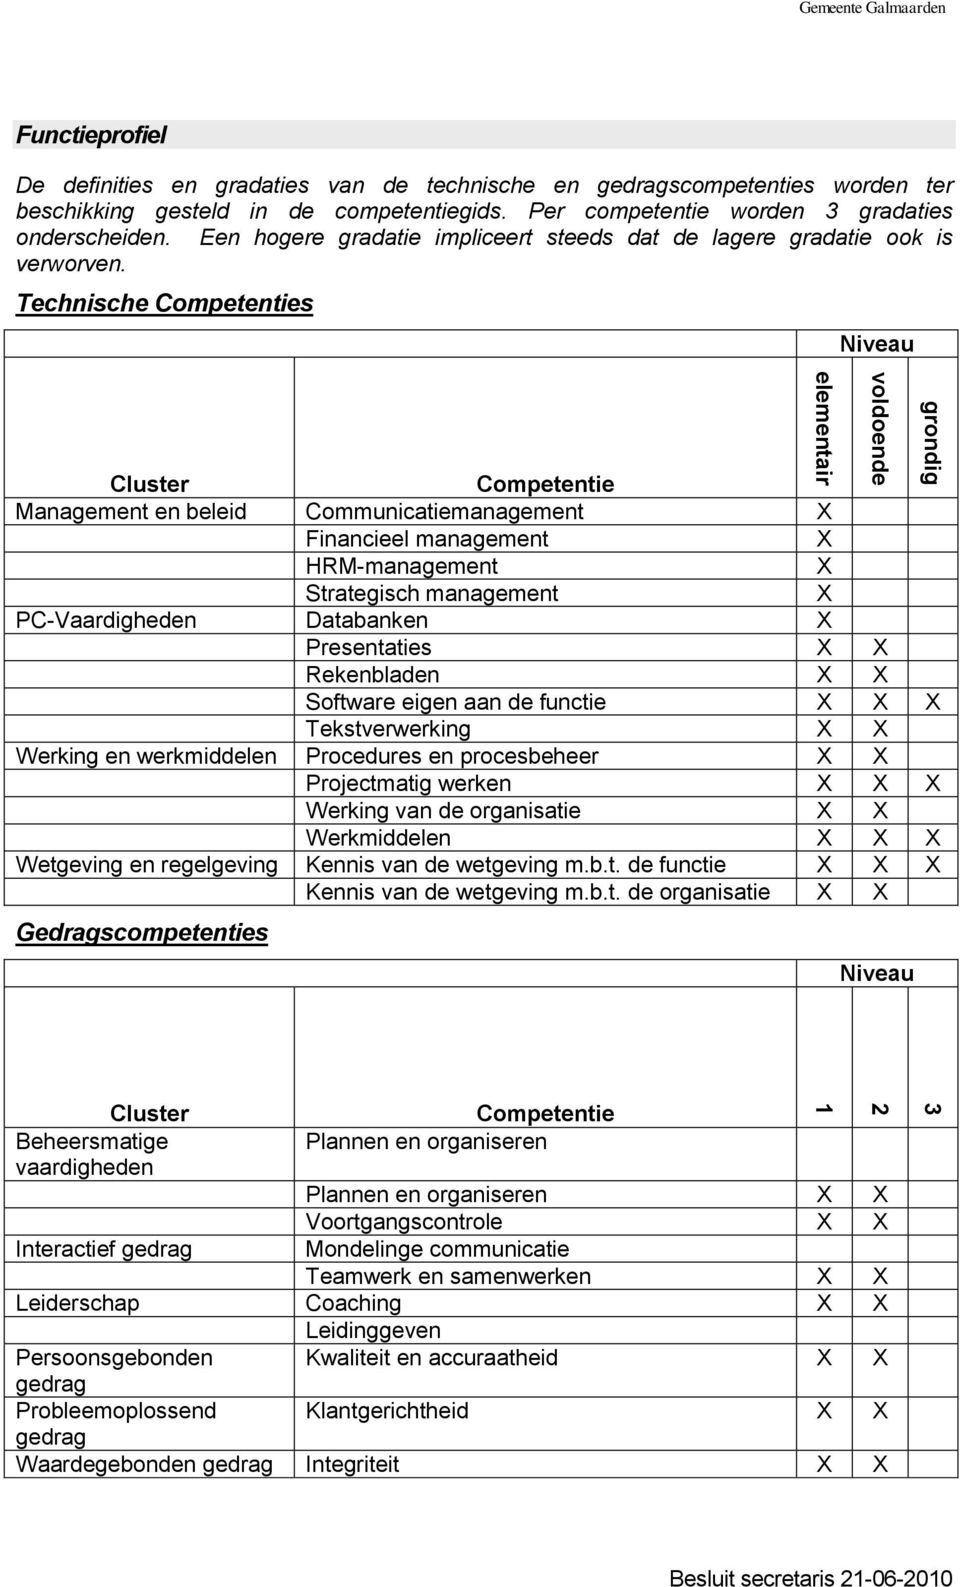 Technische Competenties Niveau Cluster Competentie Management en beleid Communicatiemanagement X Financieel management X HRM-management X Strategisch management X PC-Vaardigheden Databanken X